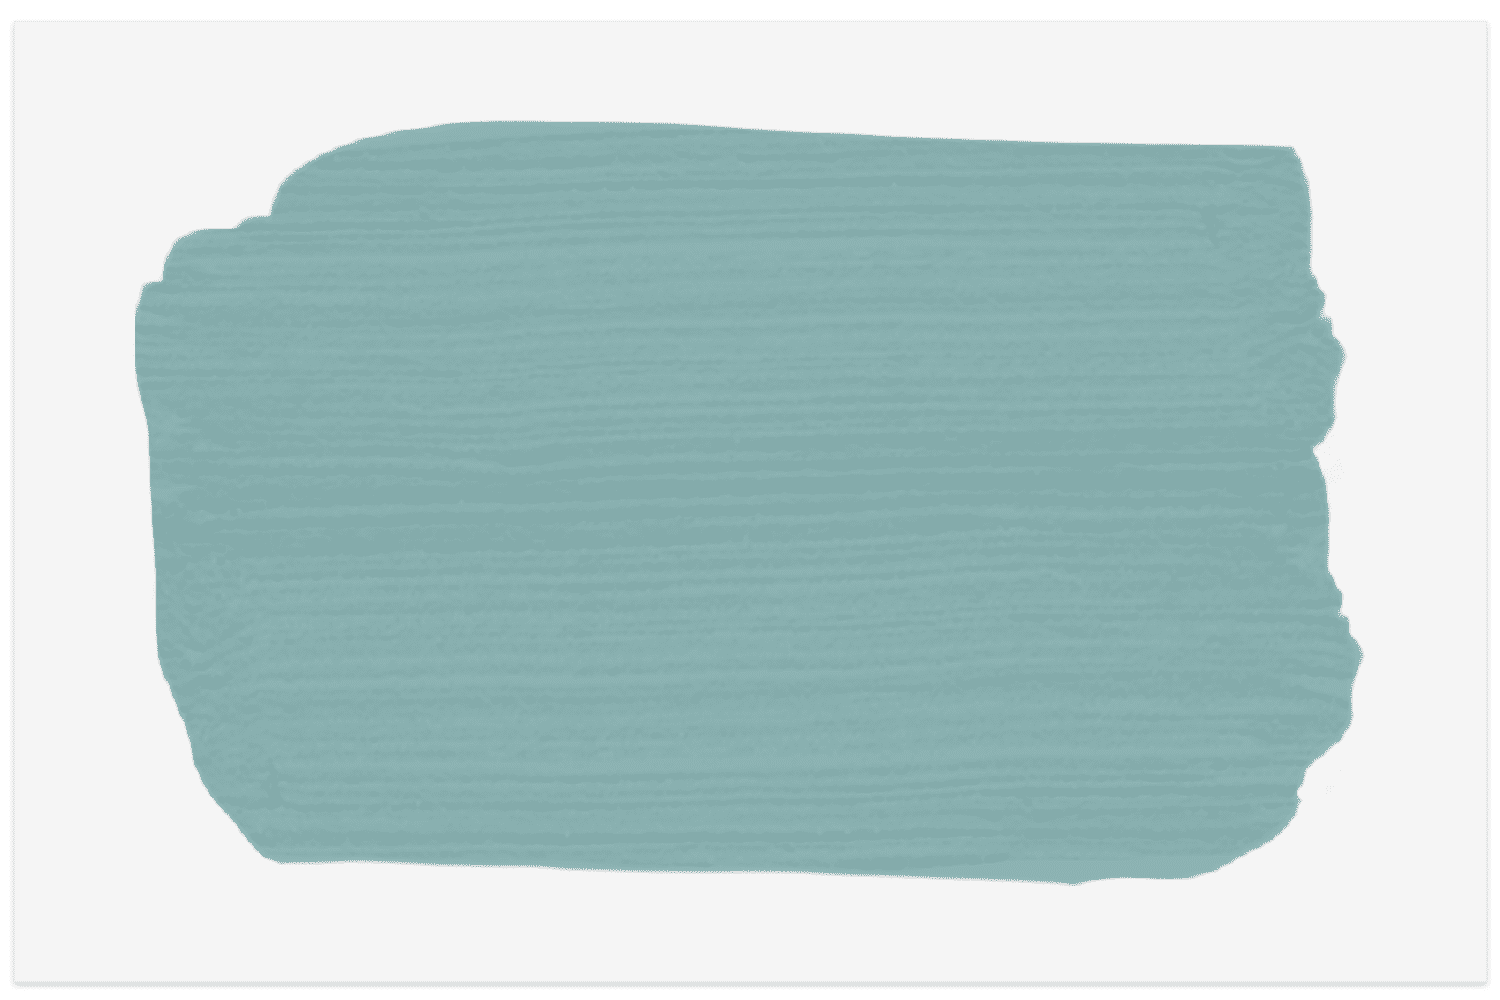 Paint swatch of Turquoise Porcelain by Valspar